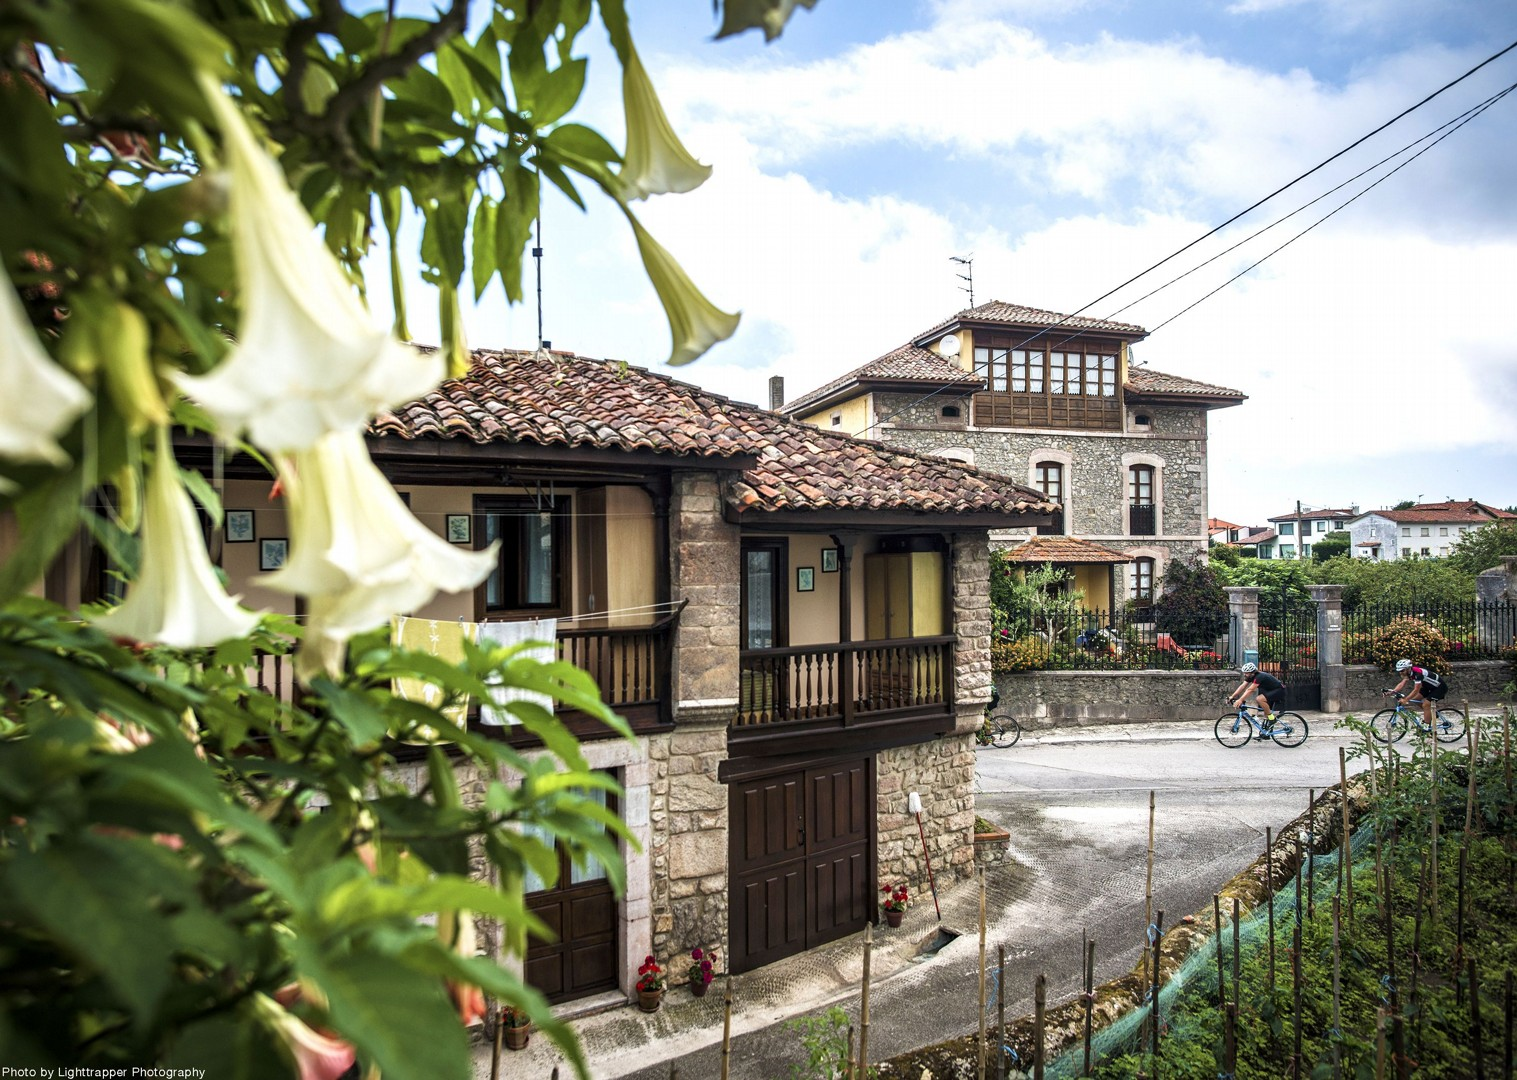 northern-spain-cycling-town-traditional-san-vincete.jpg - Northern Spain - Road to Santiago - Guided Road Cycling Holiday - Road Cycling